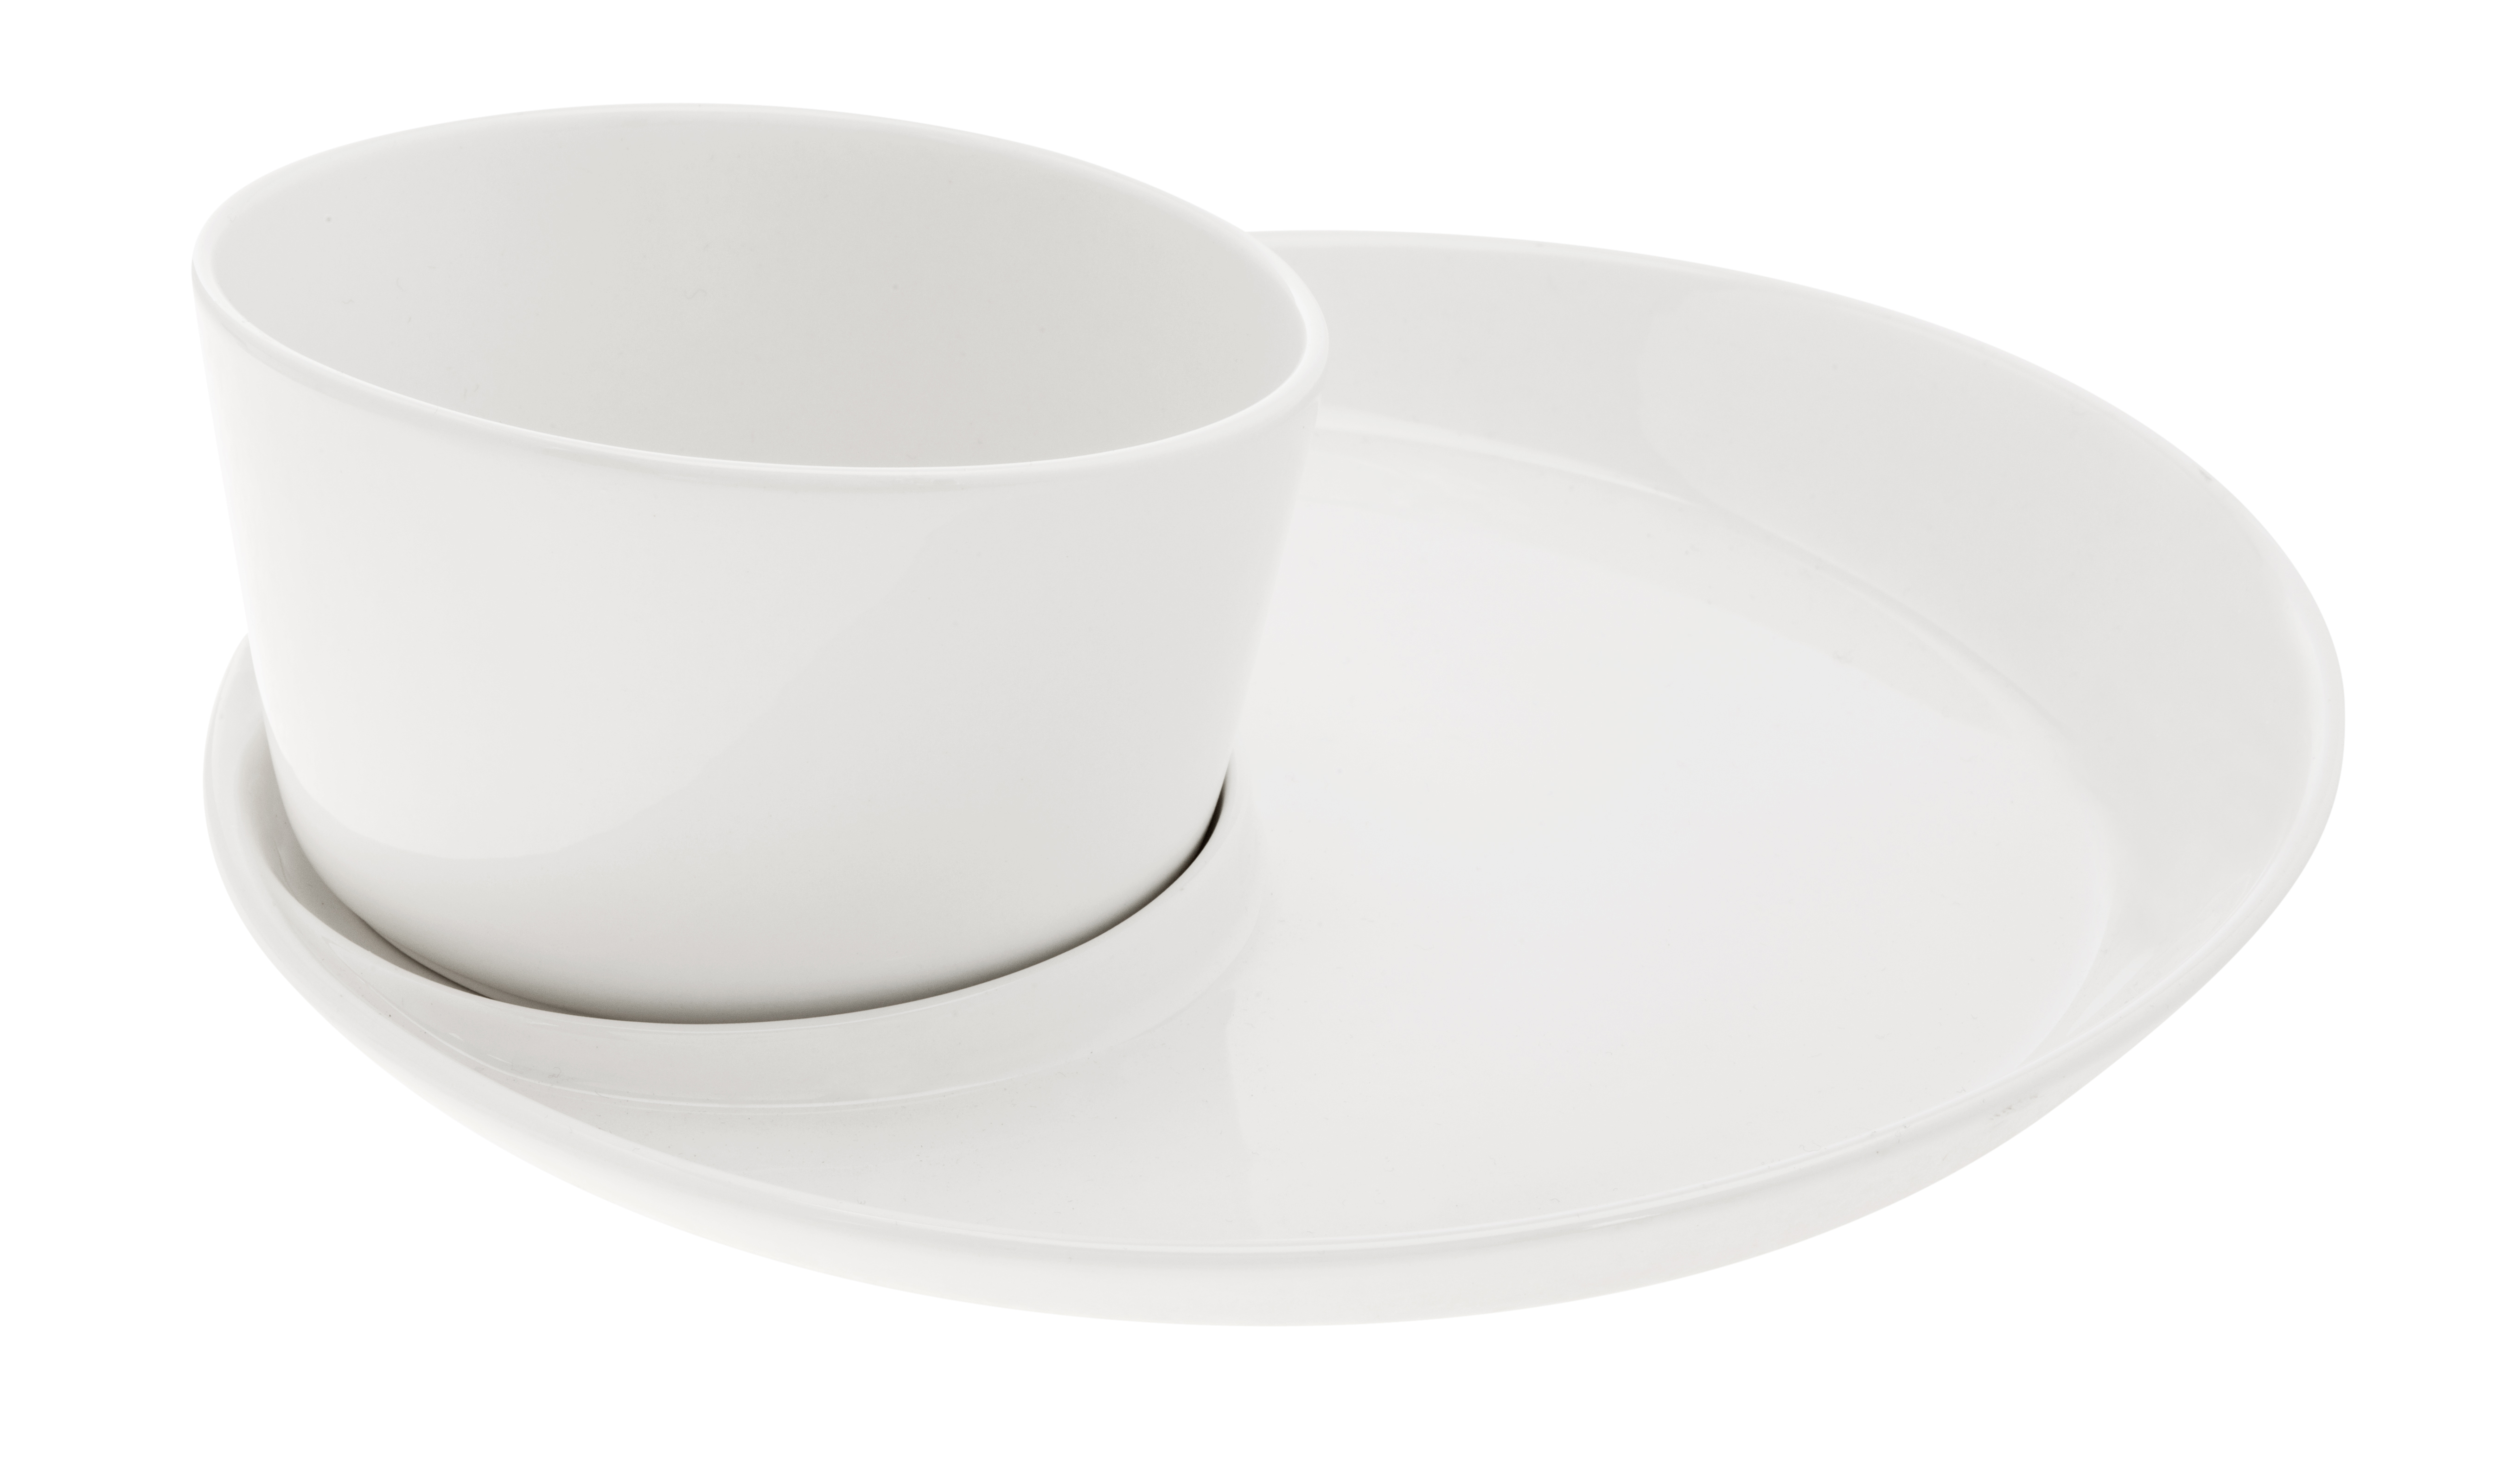 Aava Introduces Inaugural Soup and Plate Set Adds to Kitchenware Line  sc 1 st  PressRelease.com & Aava Introduces Inaugural Soup and Plate Set Adds to Kitchenware ...